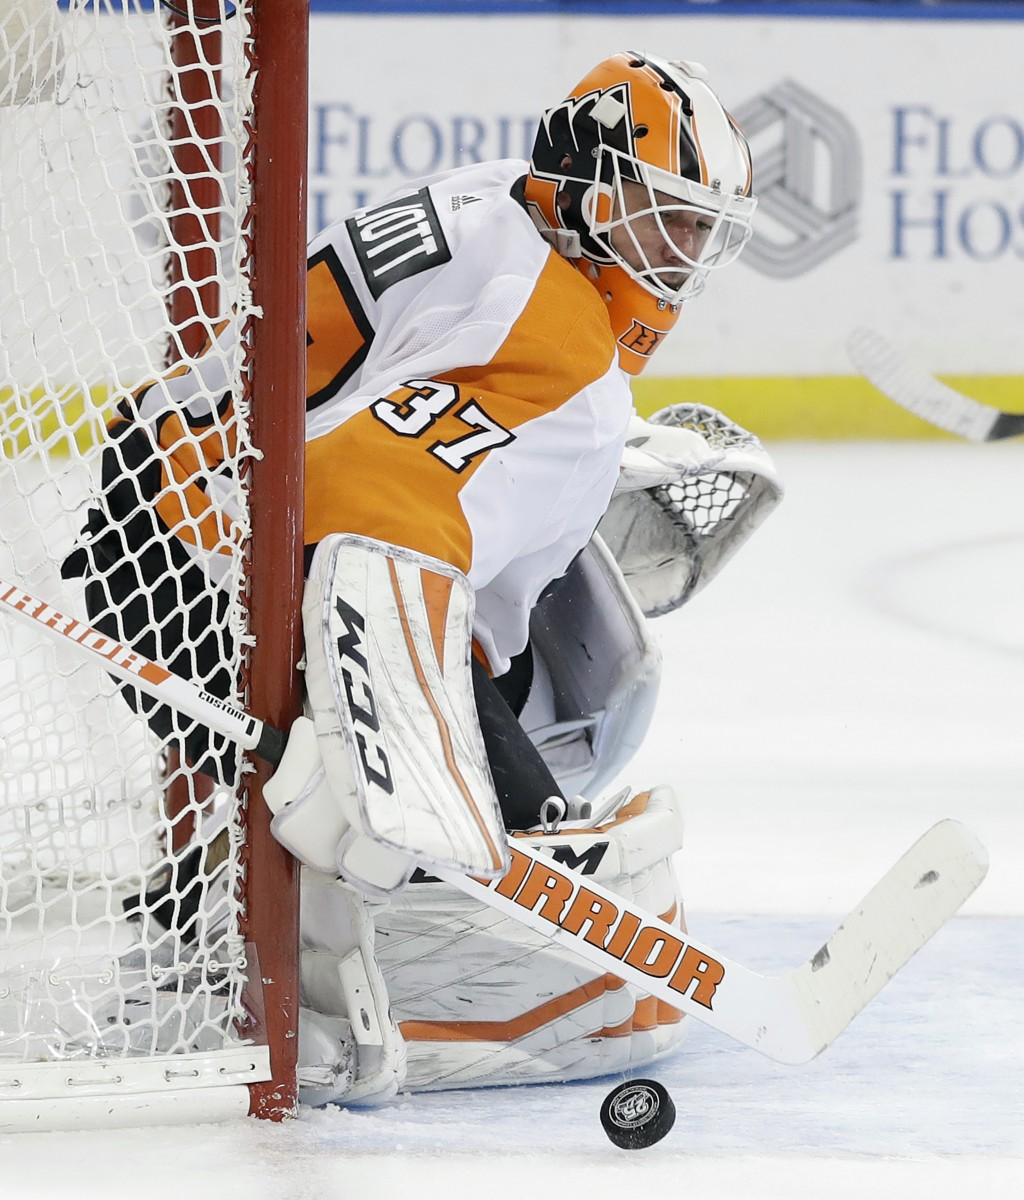 Philadelphia Flyers goaltender Brian Elliott makes a save on shot by the Tampa Bay Lightning during the second period of an NHL hockey game Friday, De...